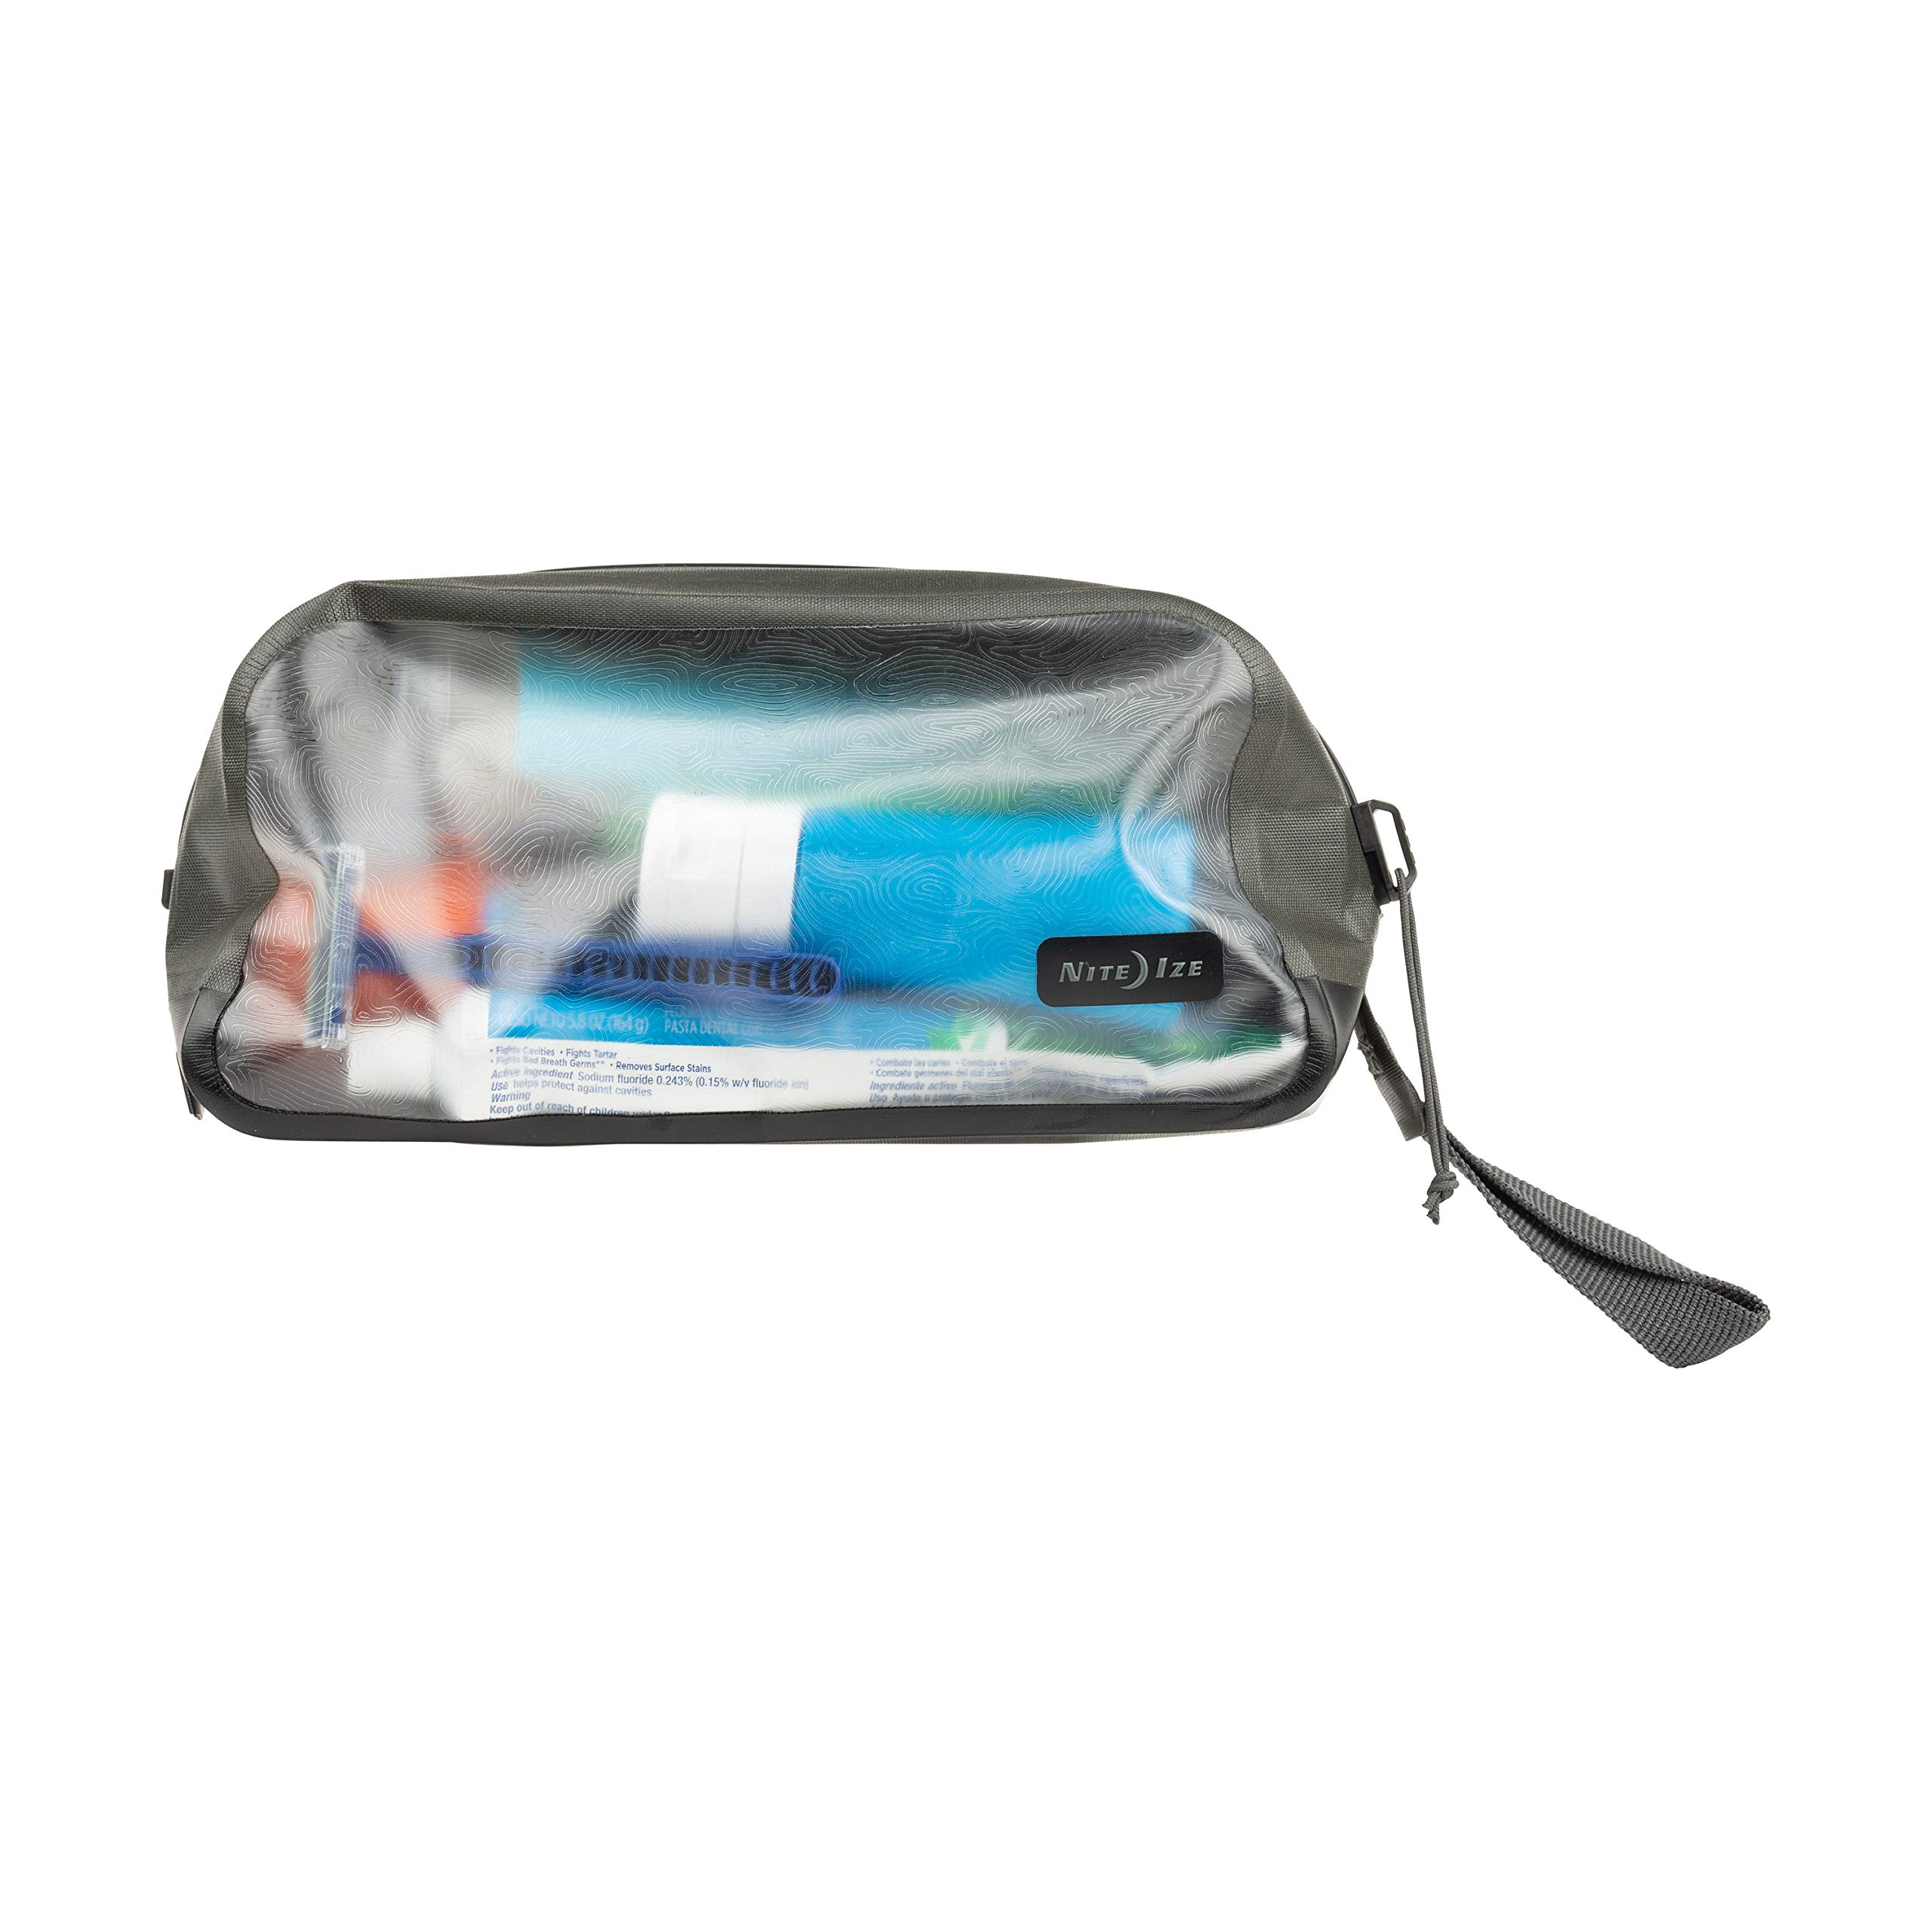 Nite Ize Runoff Waterproof Toiletry Bag, Full-Size Waterproof Hanging Toiletry Bag. Tough Trusted Protection for Adventure Travel by Nite Ize